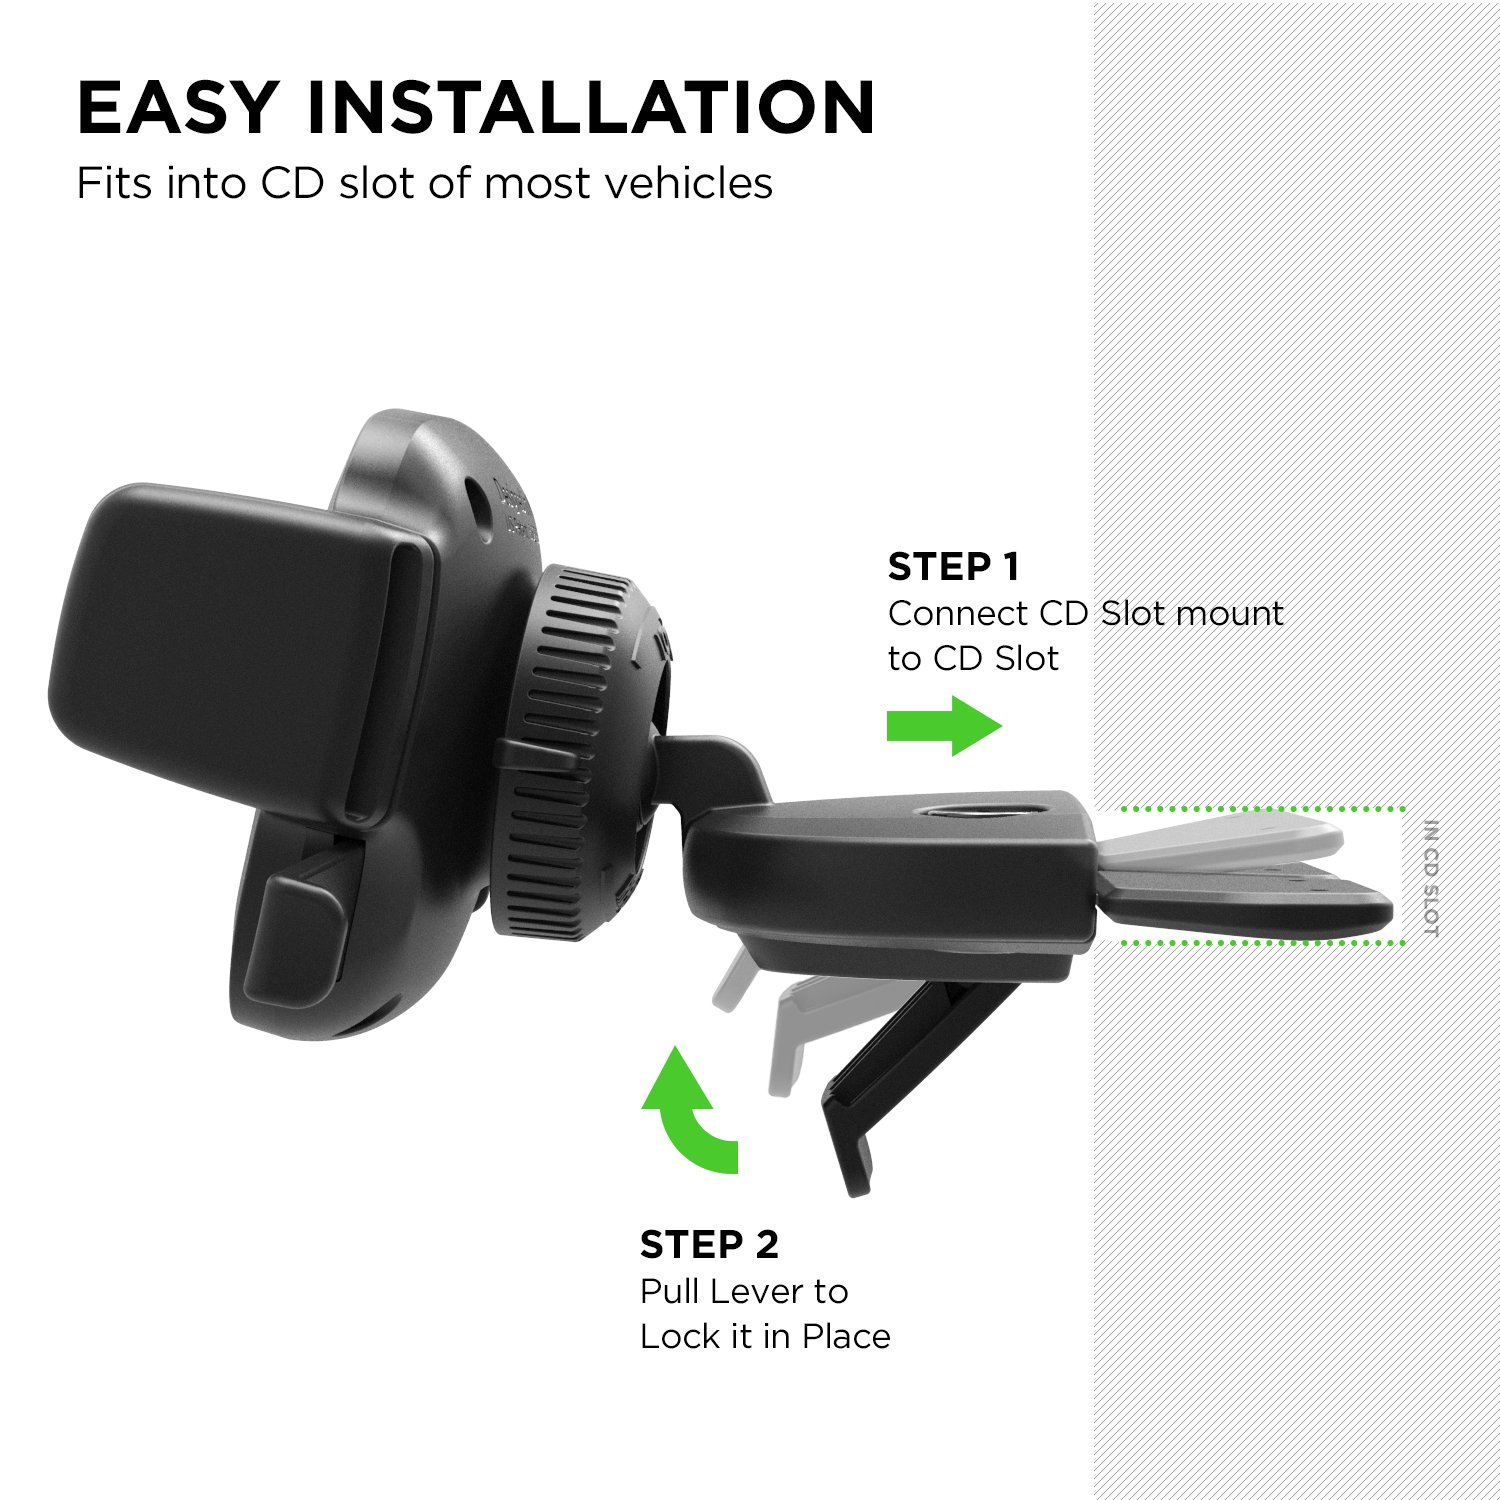 iOttie Easy One Touch 4 CD Slot Car Mount Phone Holder for iPhone X 8 Plus 7 Samsung Galaxy S9 S8 Edge S7 Note 8 & Other Smartphone by iOttie (Image #3)